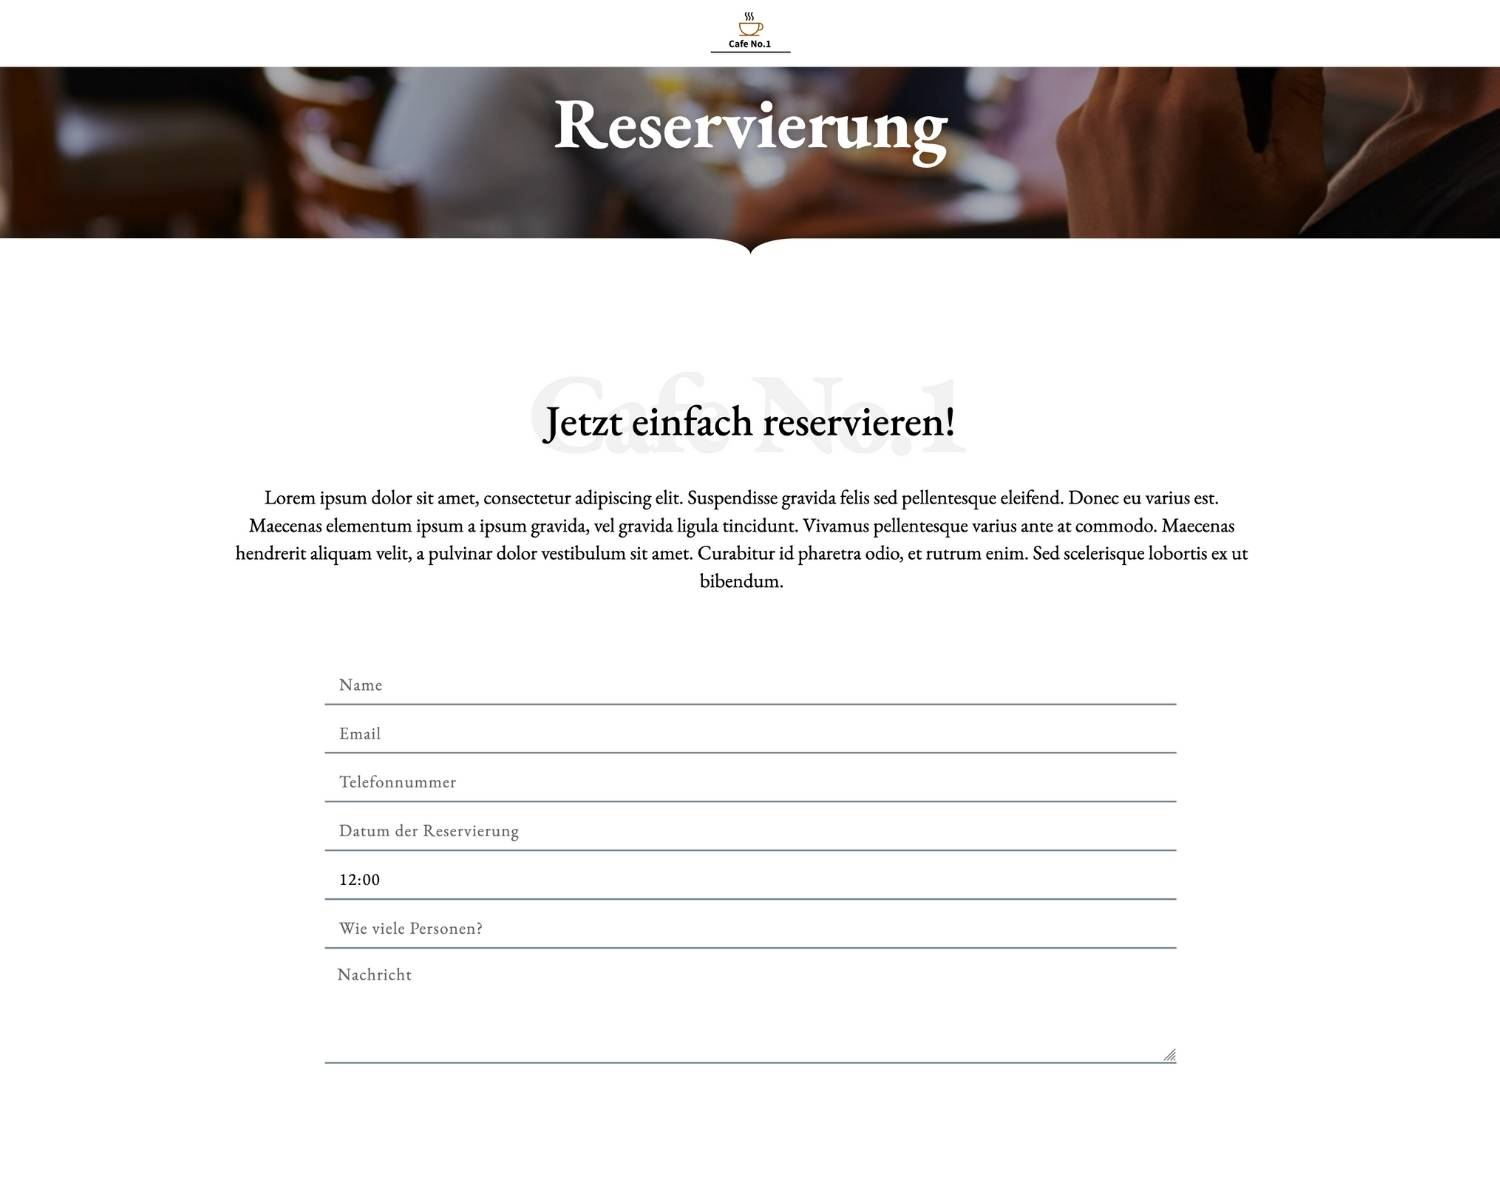 Cafe1_Reservierung_Demo_res